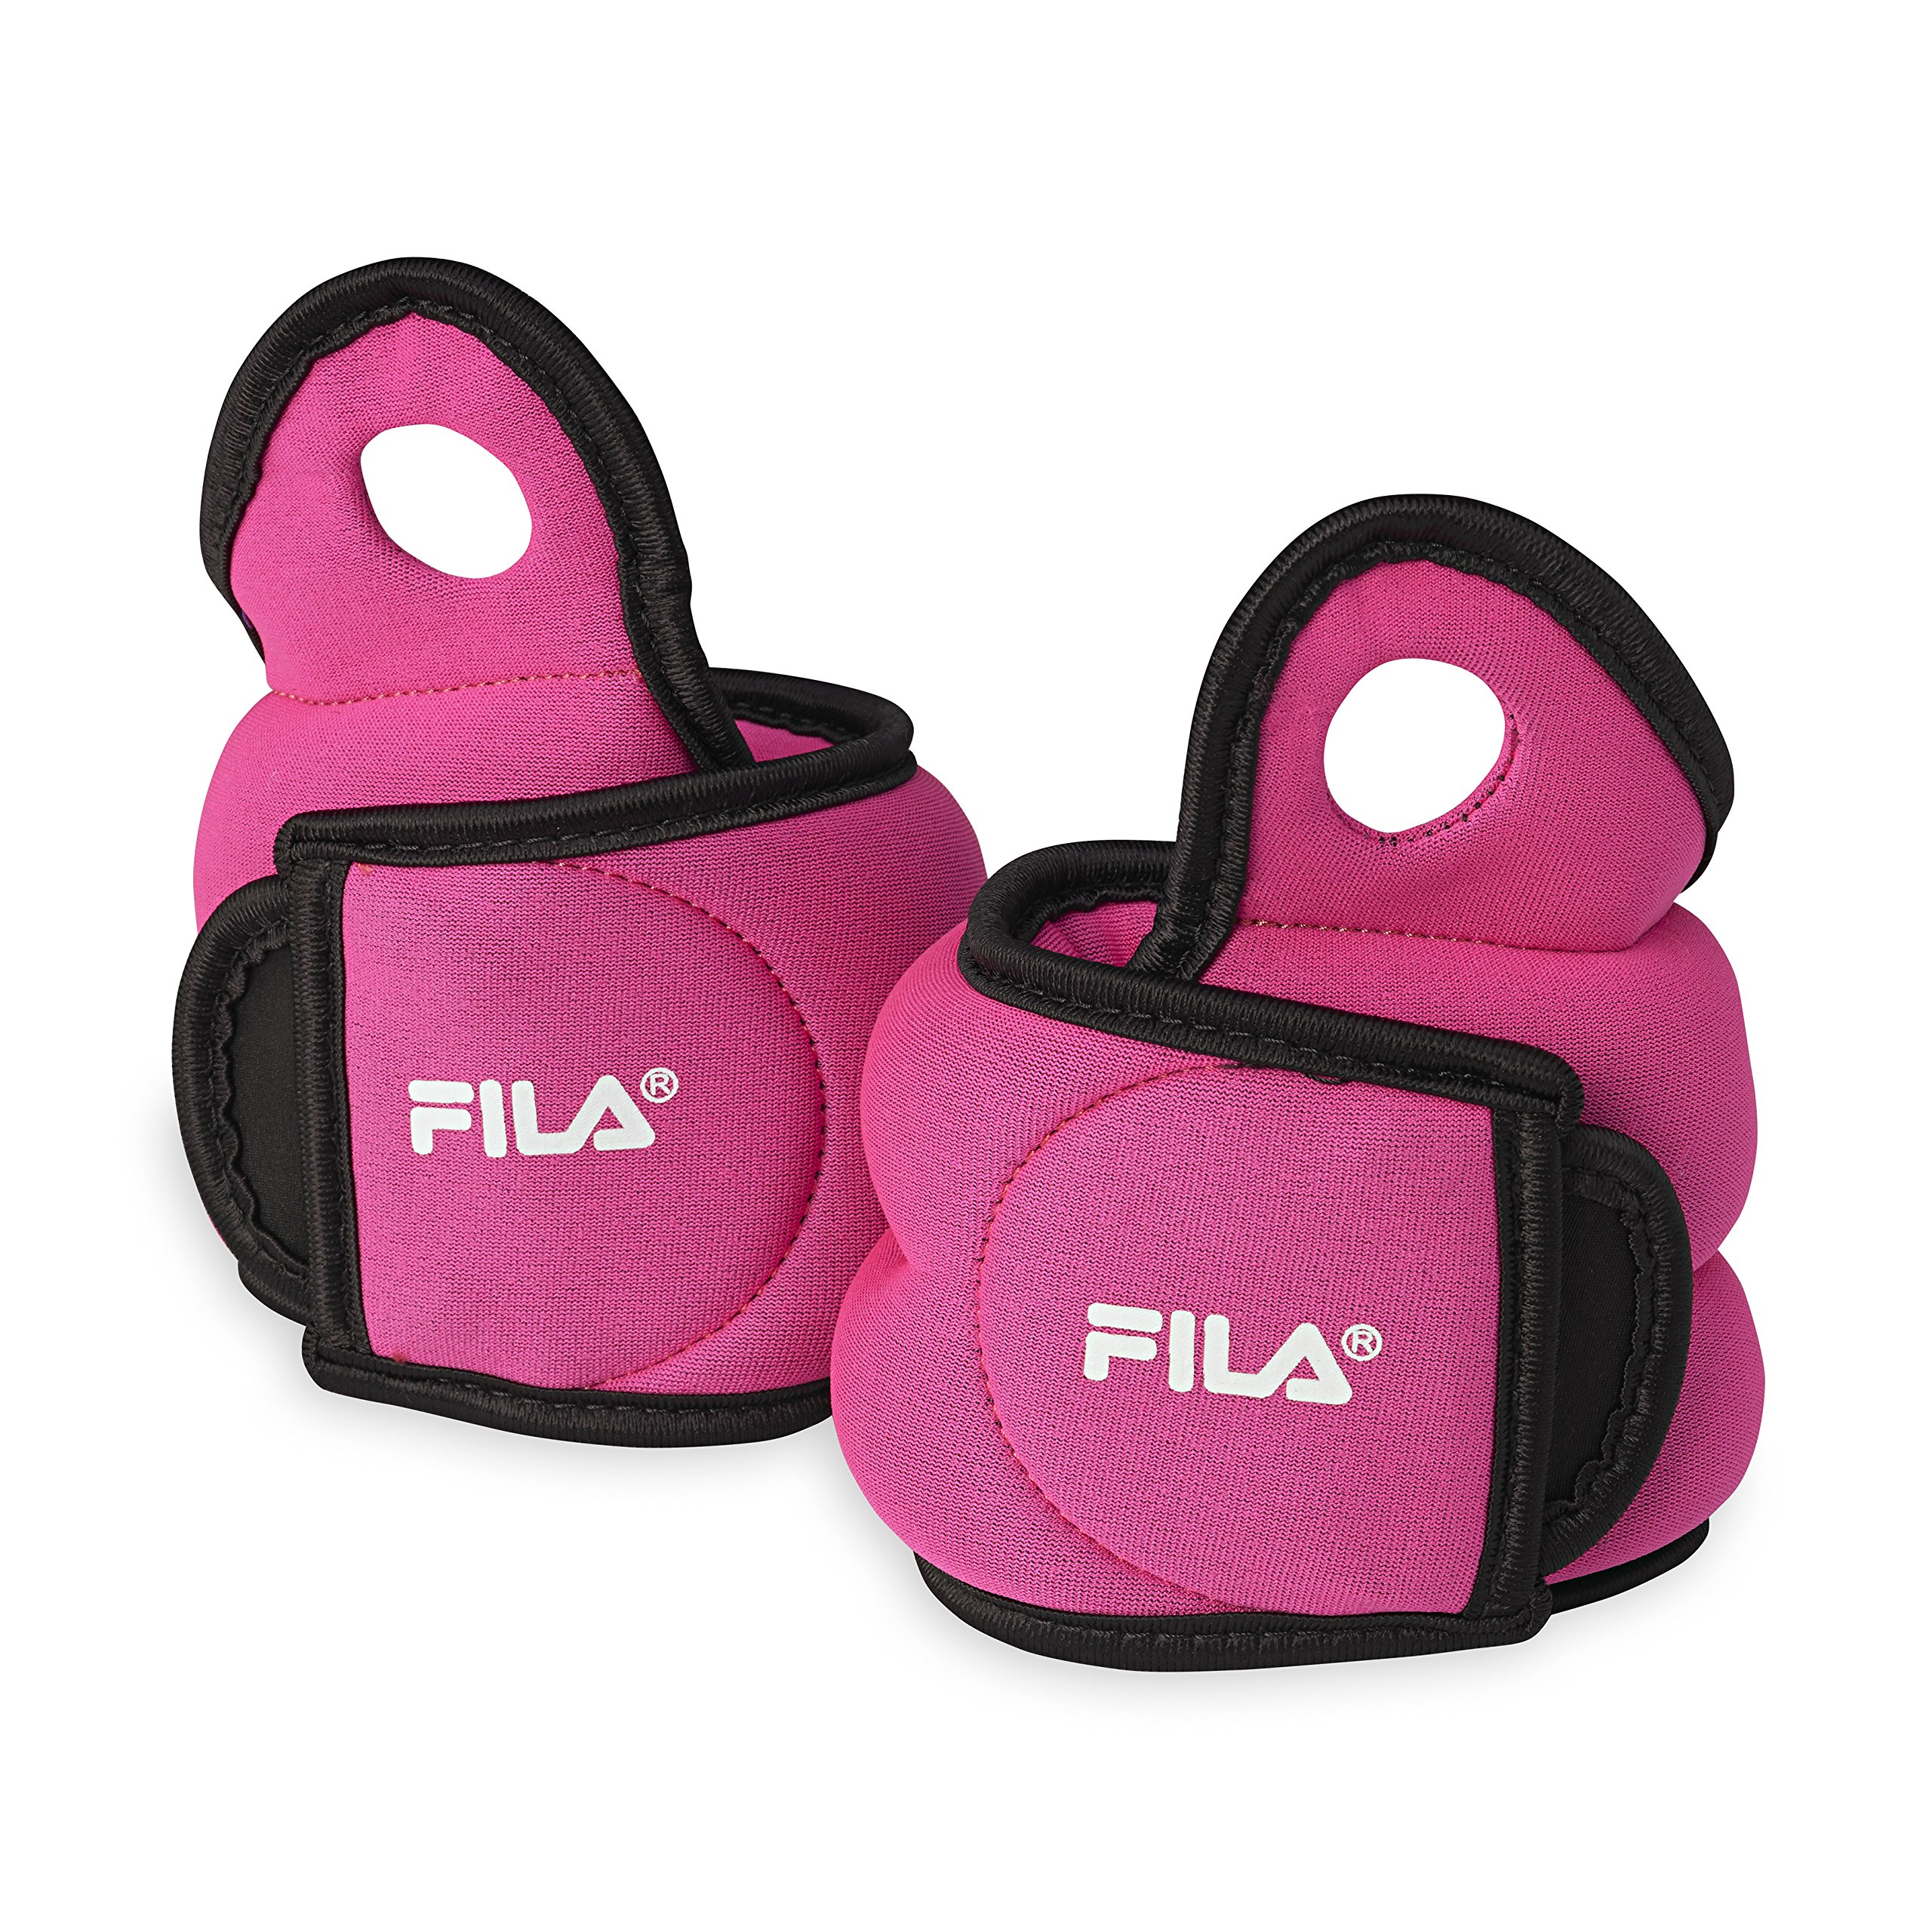 FILA Accessories Wrist Weights Set, 4lb Set (2lbs Each)